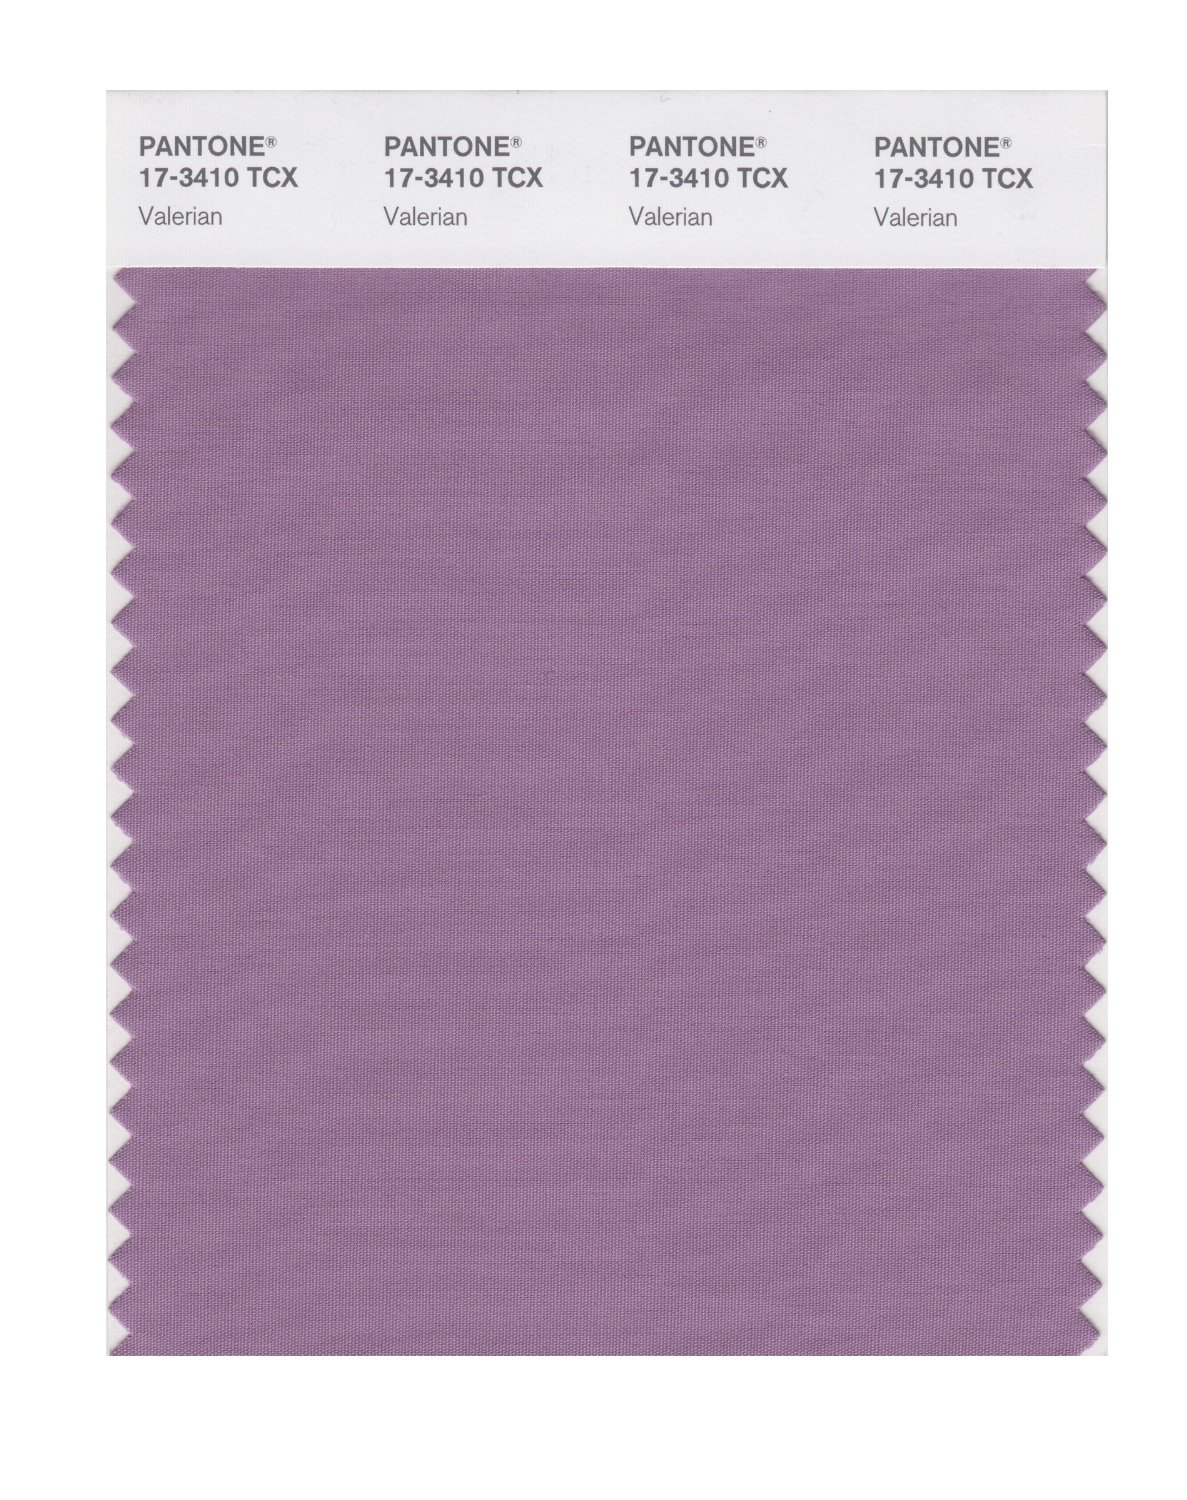 Pantone Smart Swatch 17-3410 Valerian